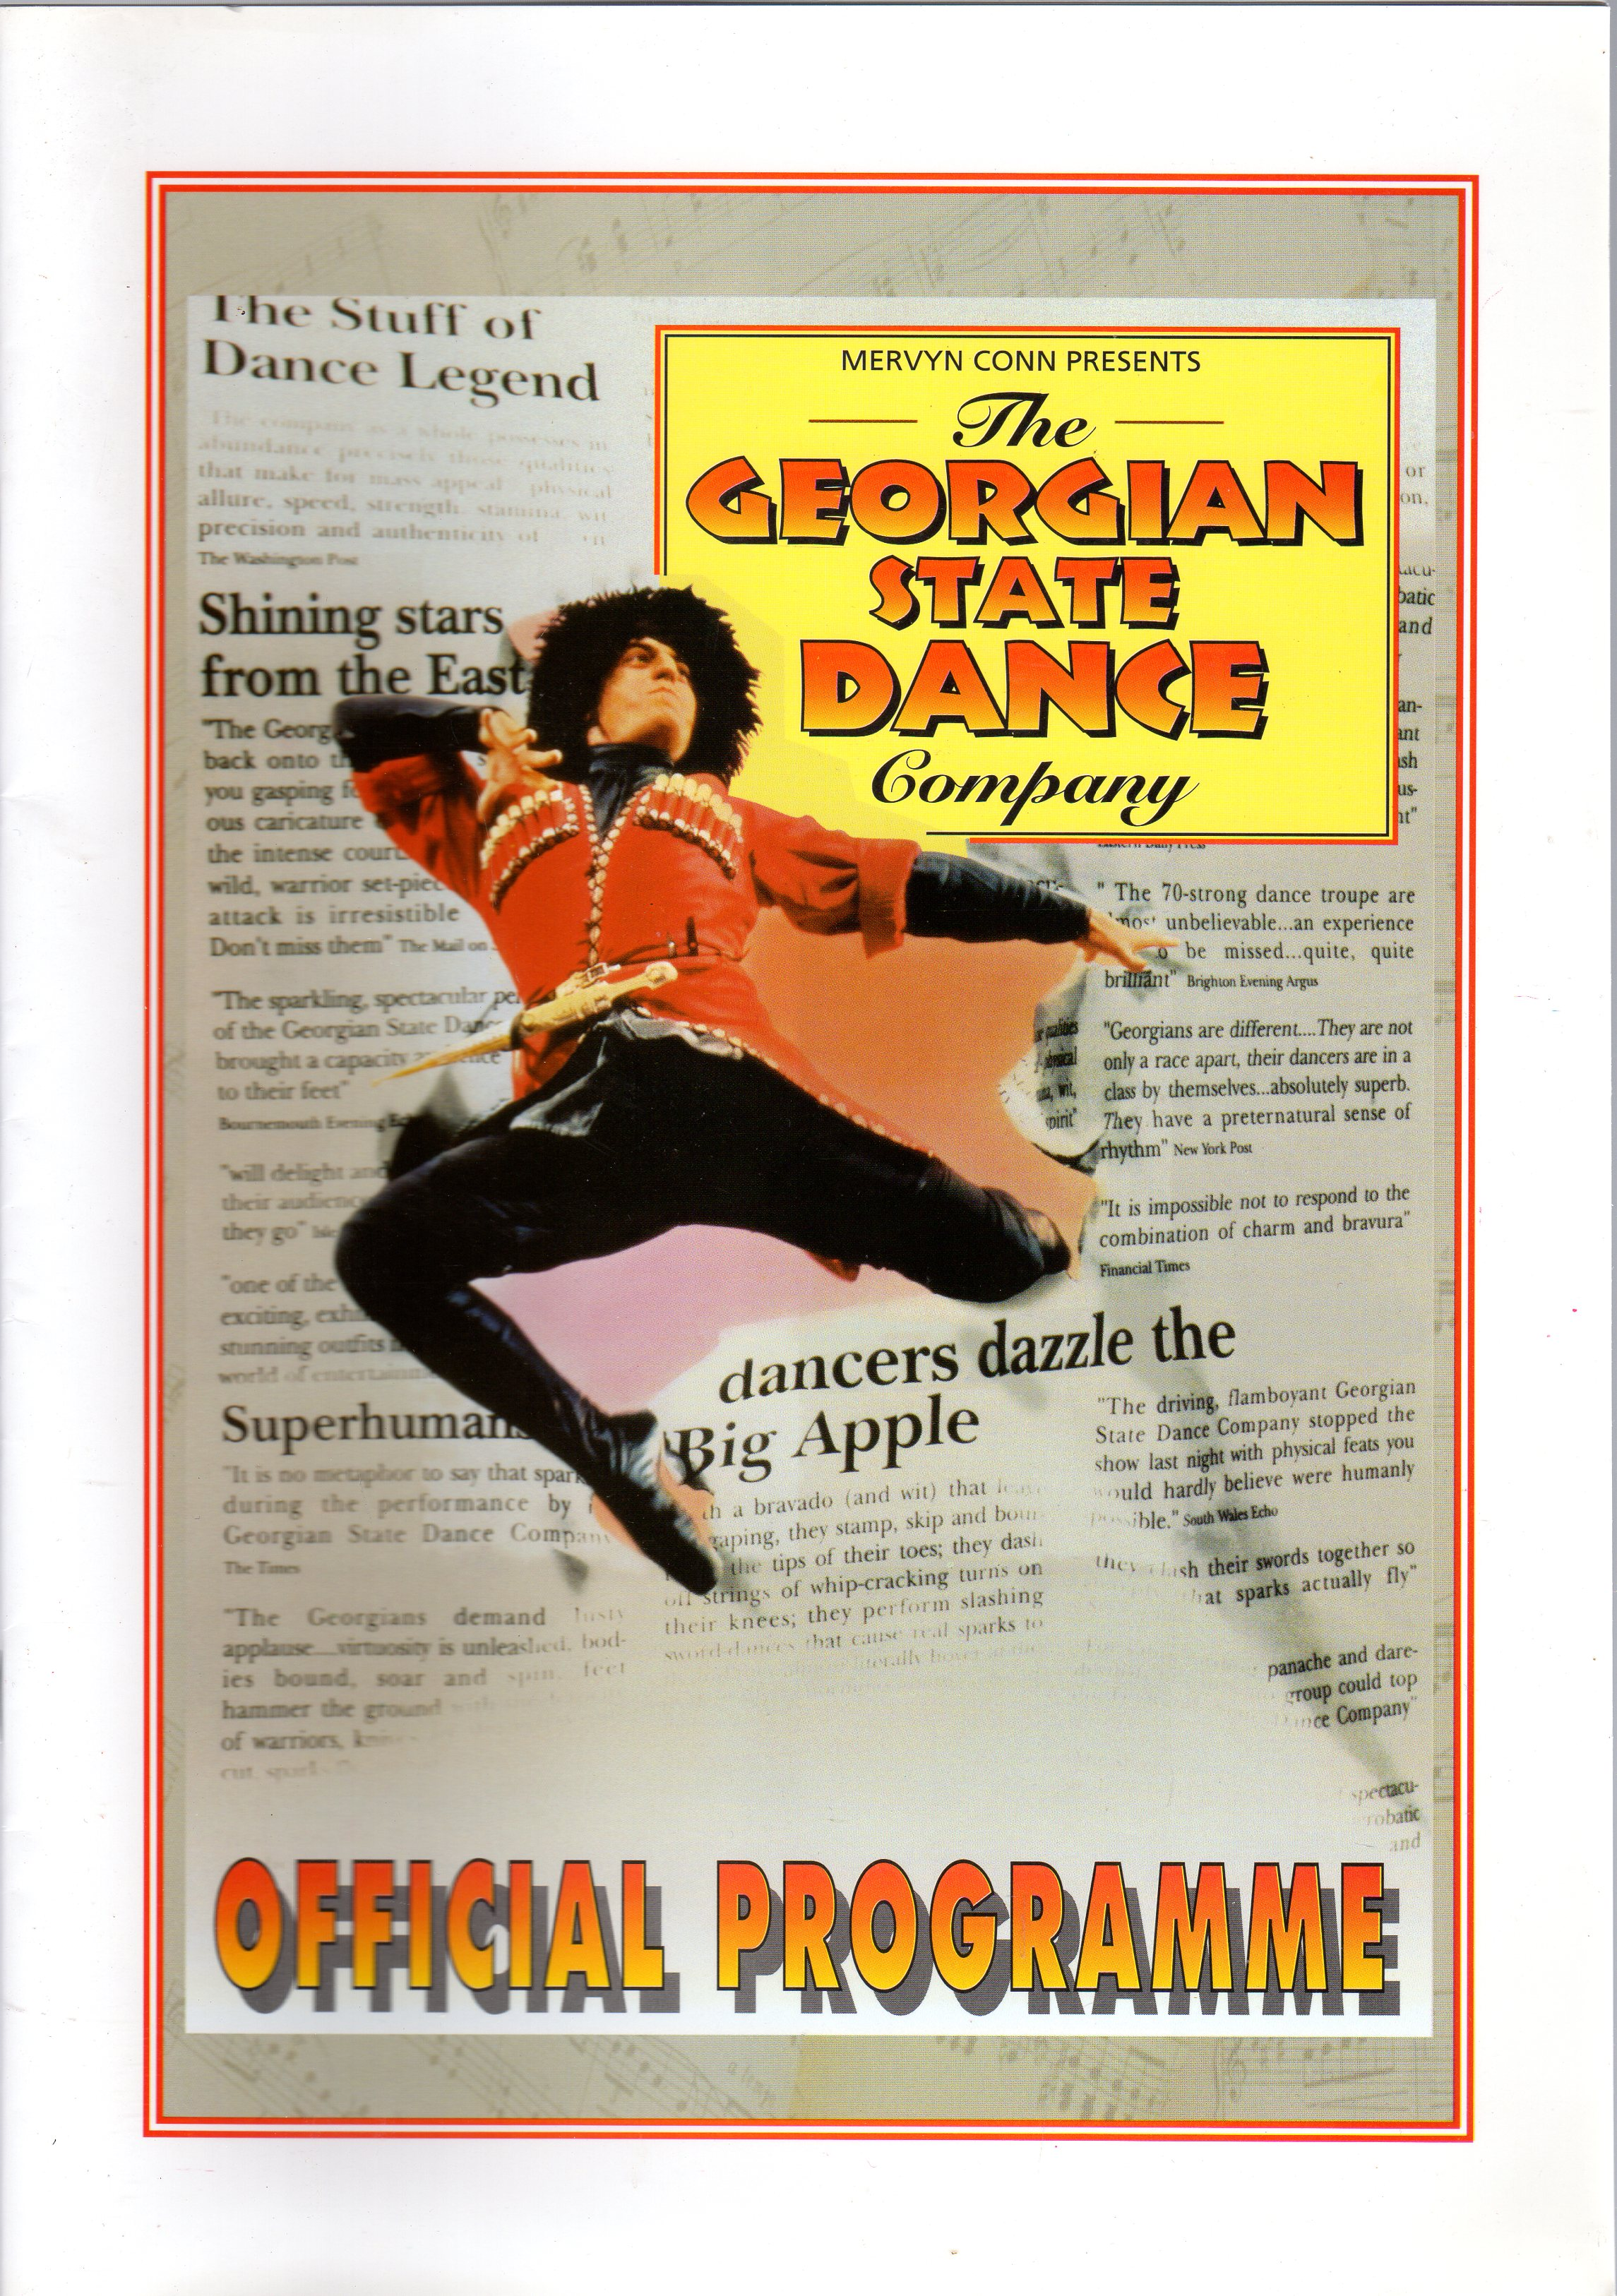 Image for The Georgian State Dance Company (OFFICIAL PROGRAMME)